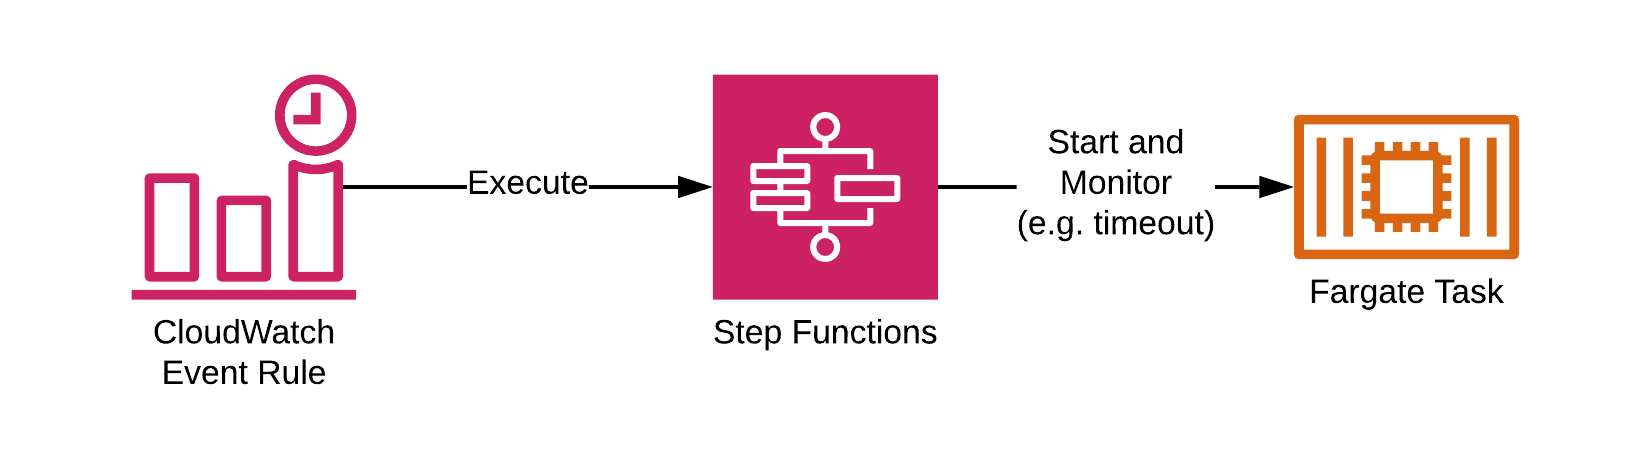 A CloudWatch Events Rule triggers a Step Function which starts an ECS task